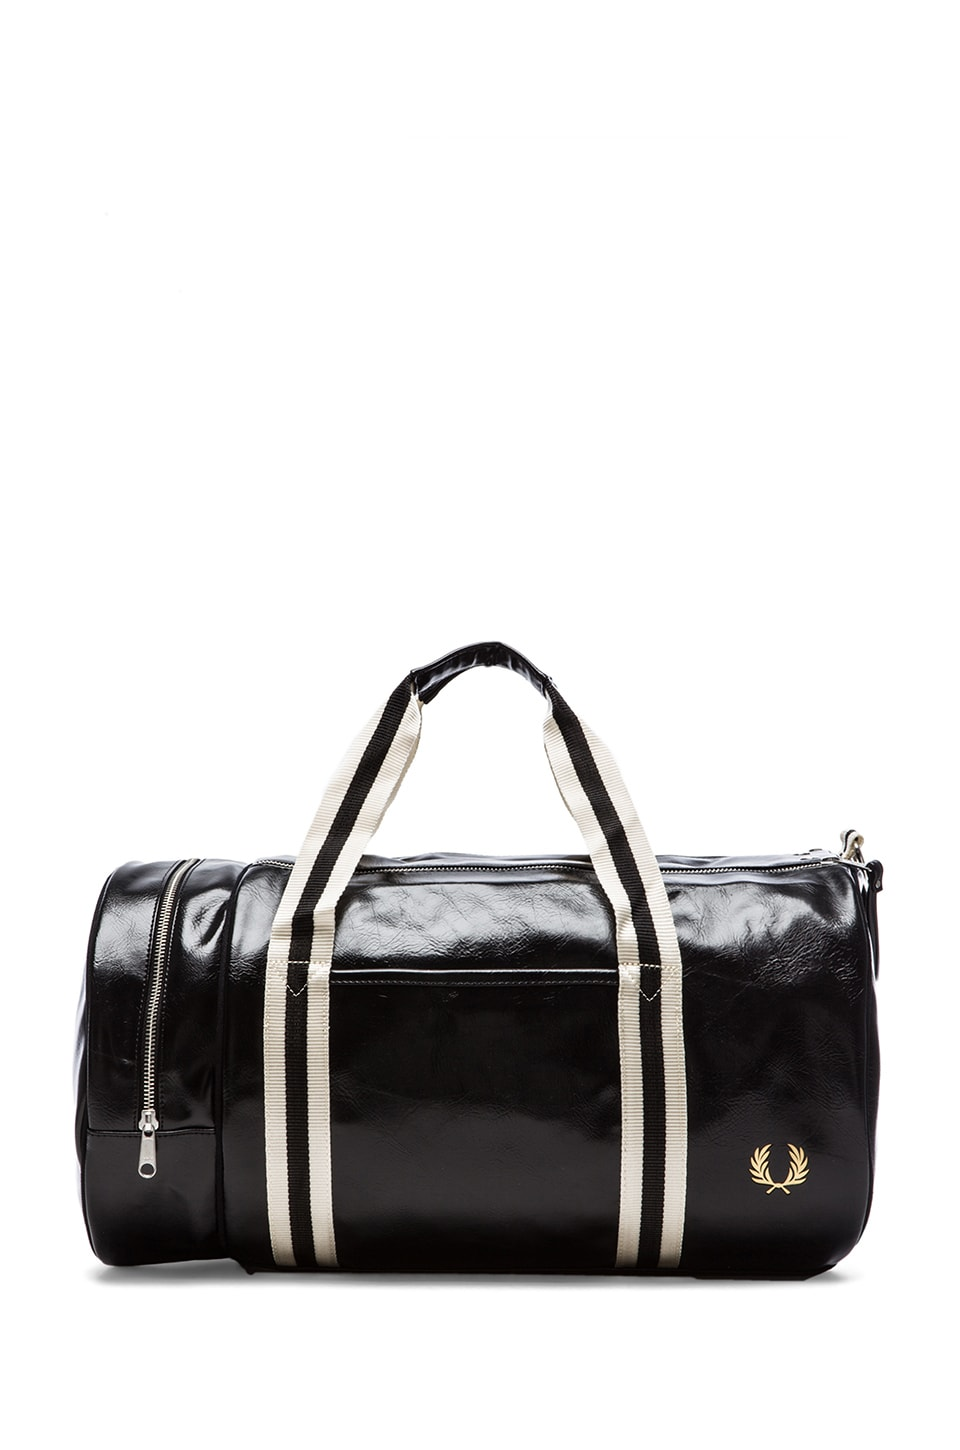 Fred Perry Classic Barrel Bag in Black/ Gold